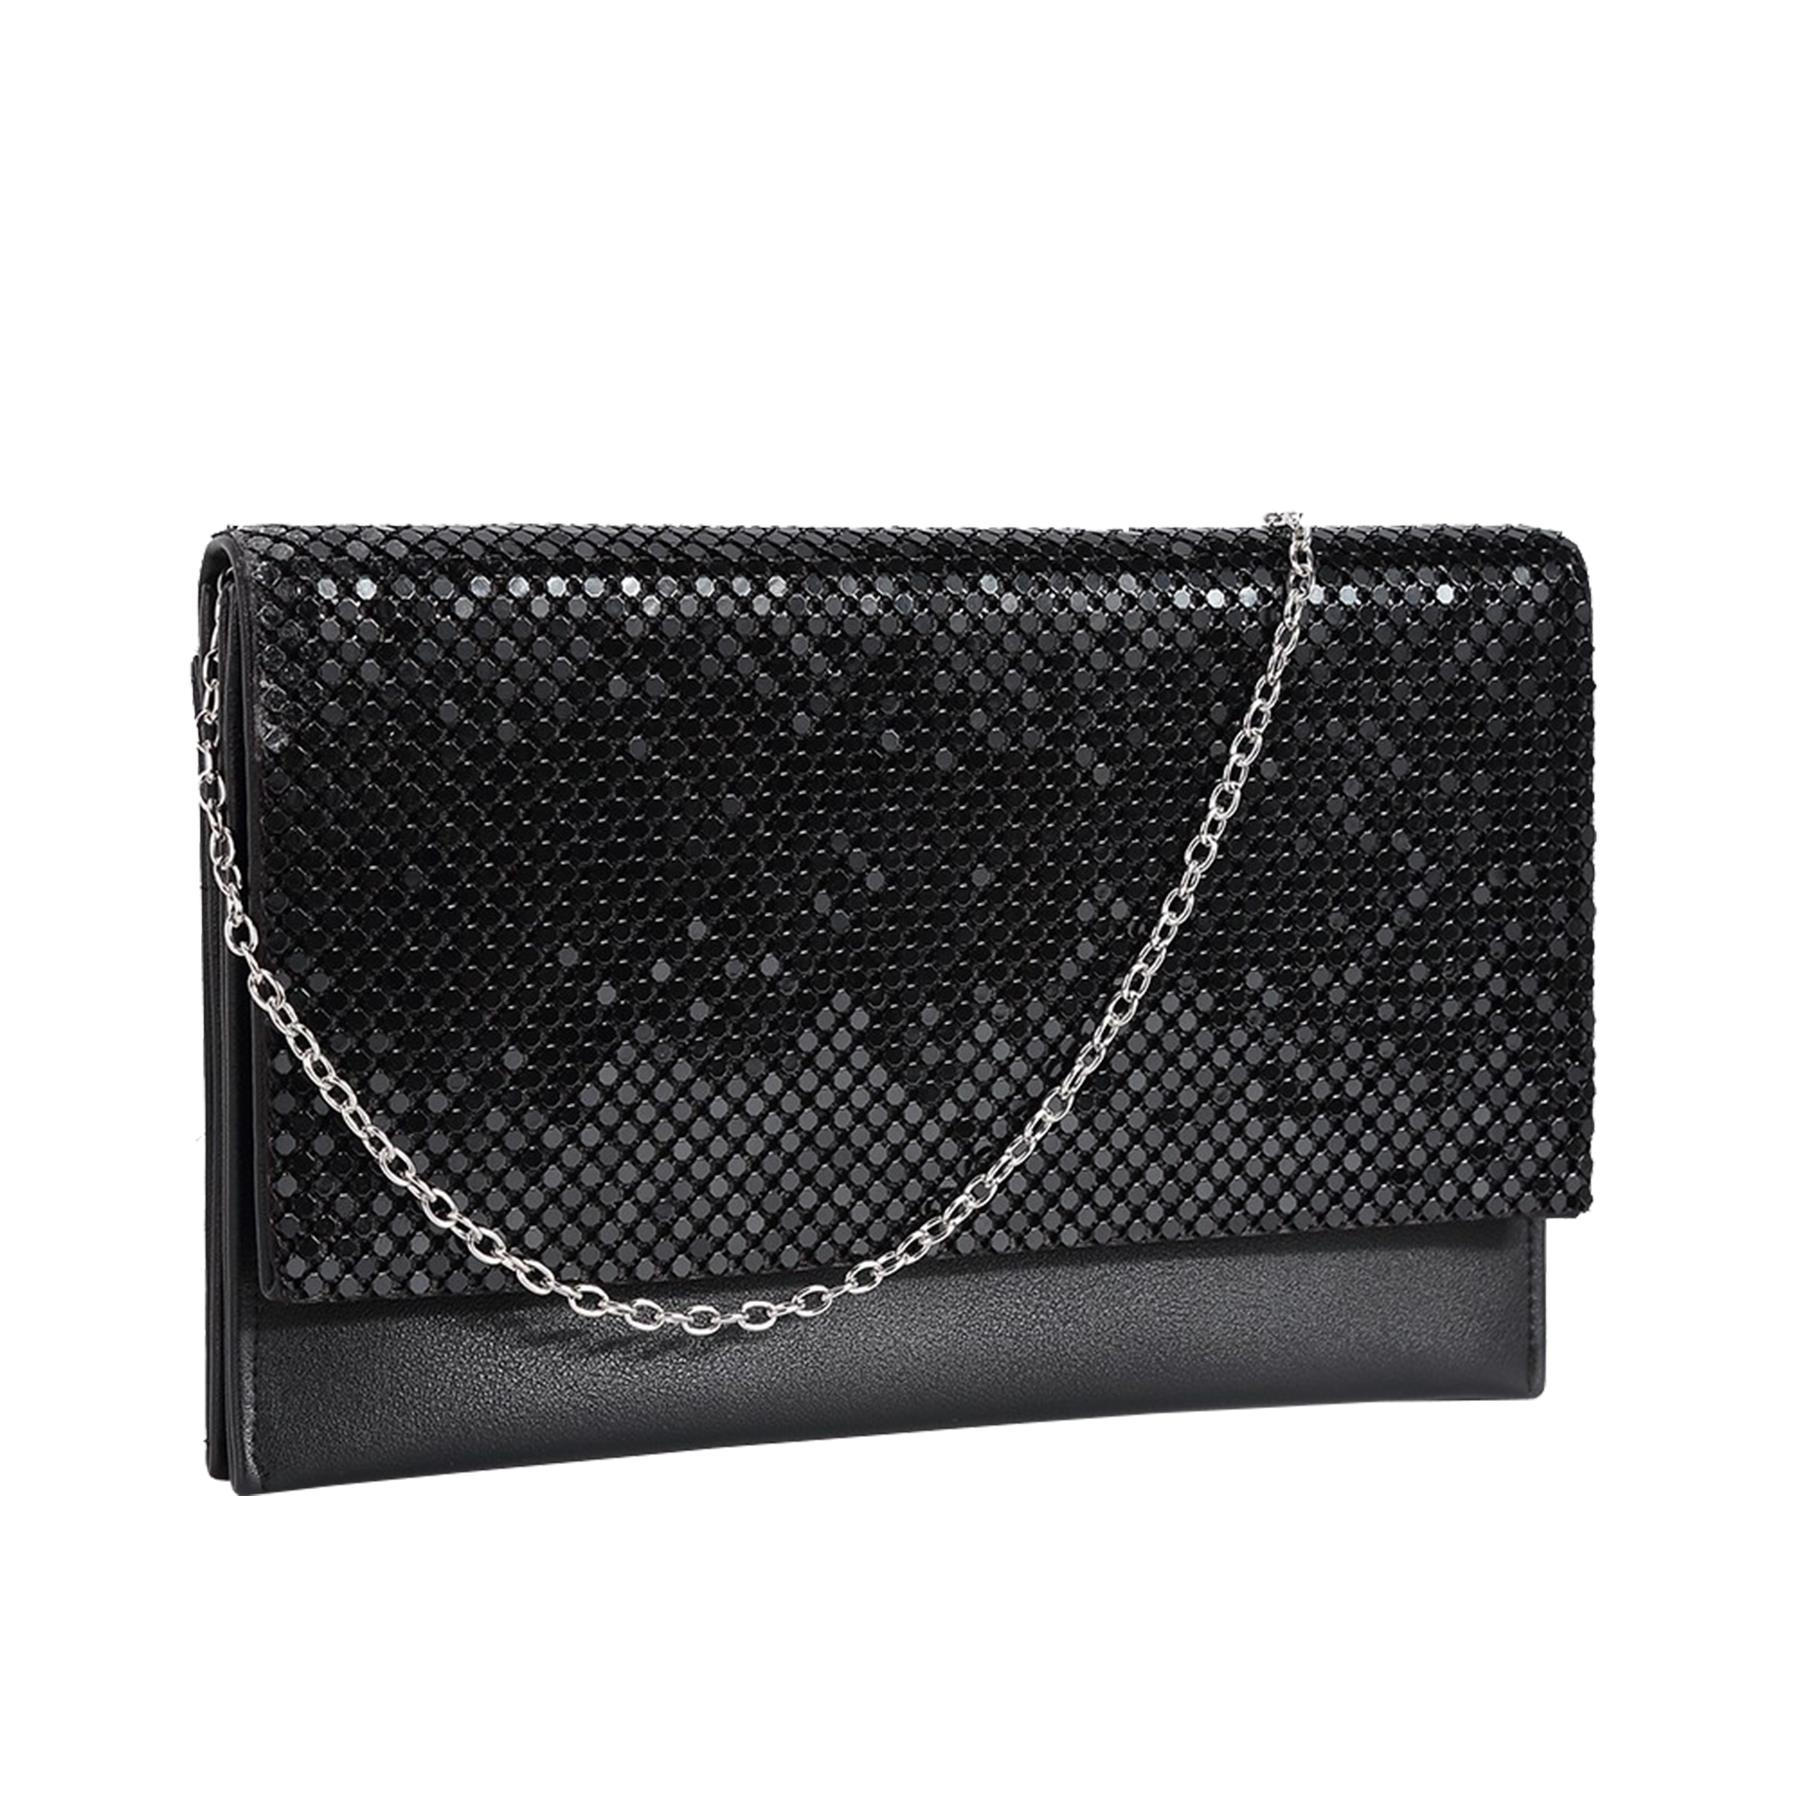 New-Ladies-Chainmail-Faux-Leather-Chain-Strap-Wedding-Clutch-Bag-Pouch thumbnail 3